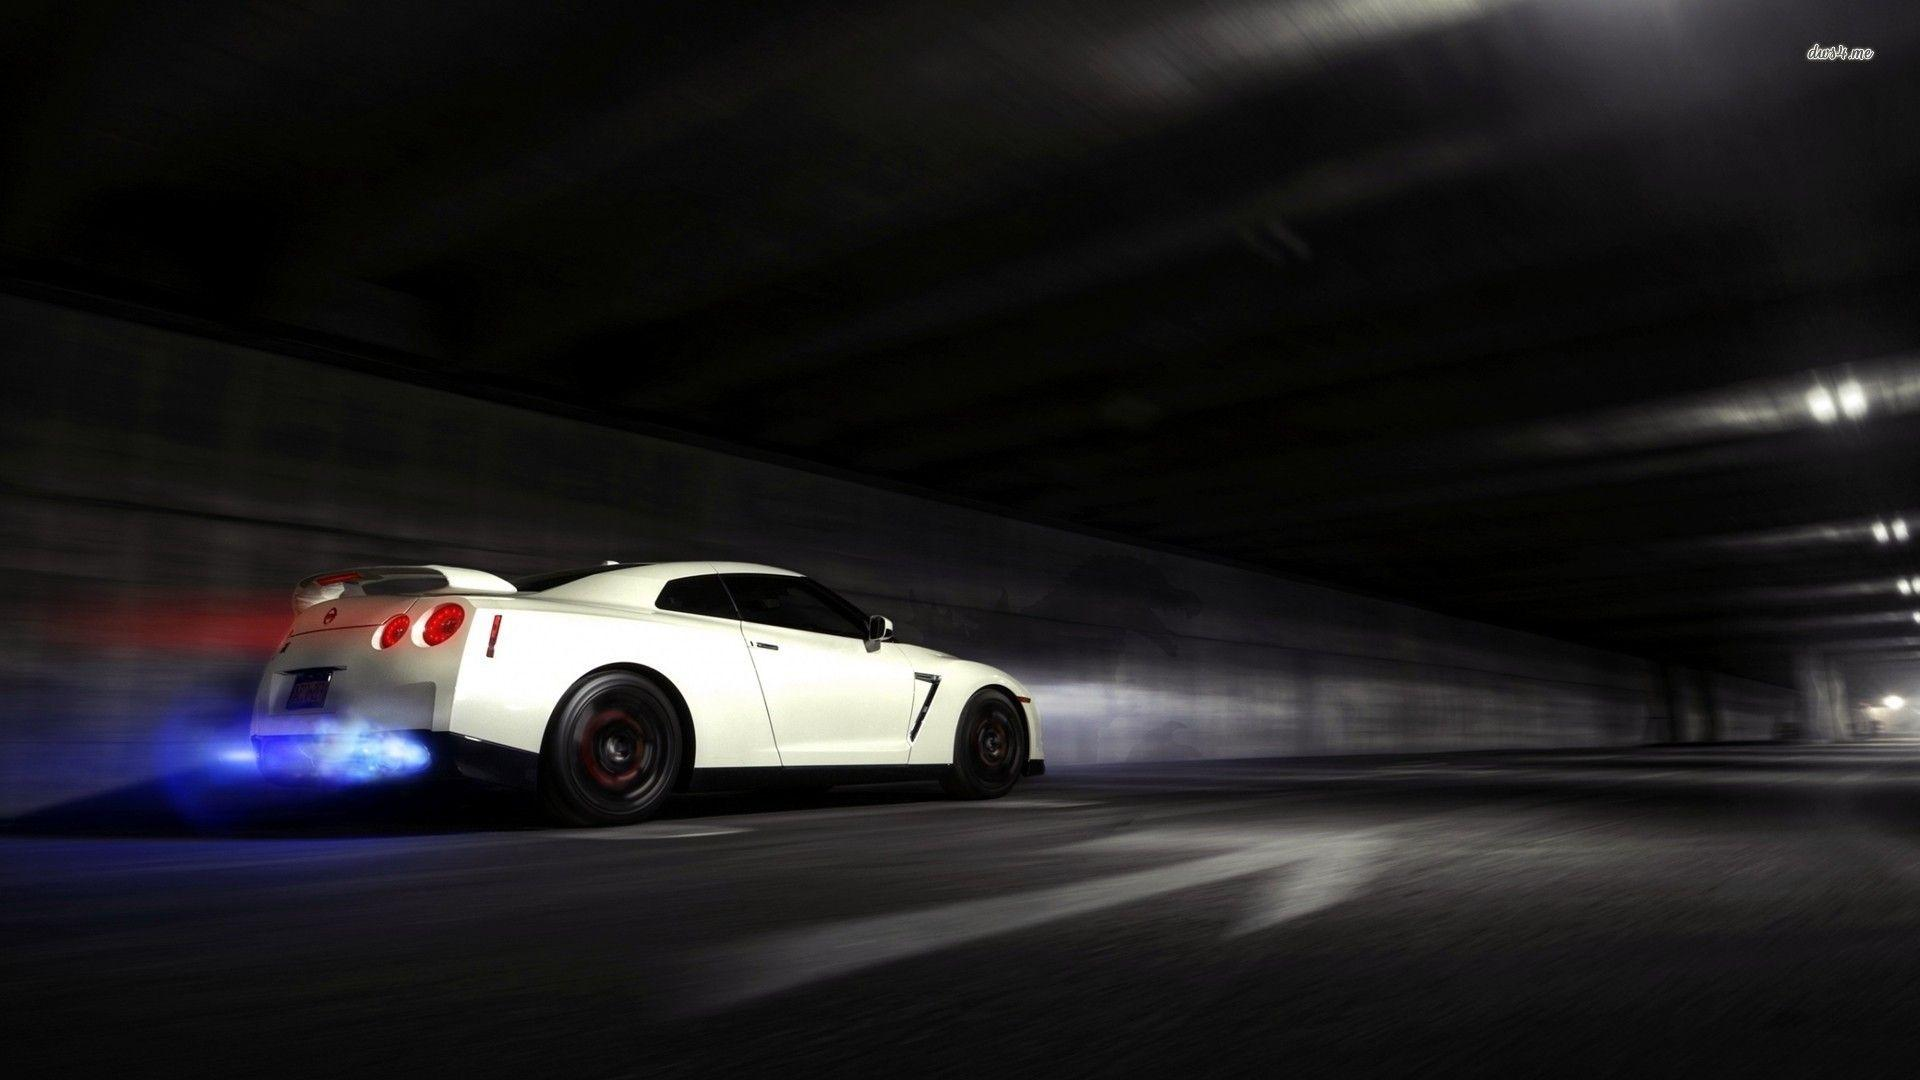 Nissan Skyline GTR Wallpapers Group